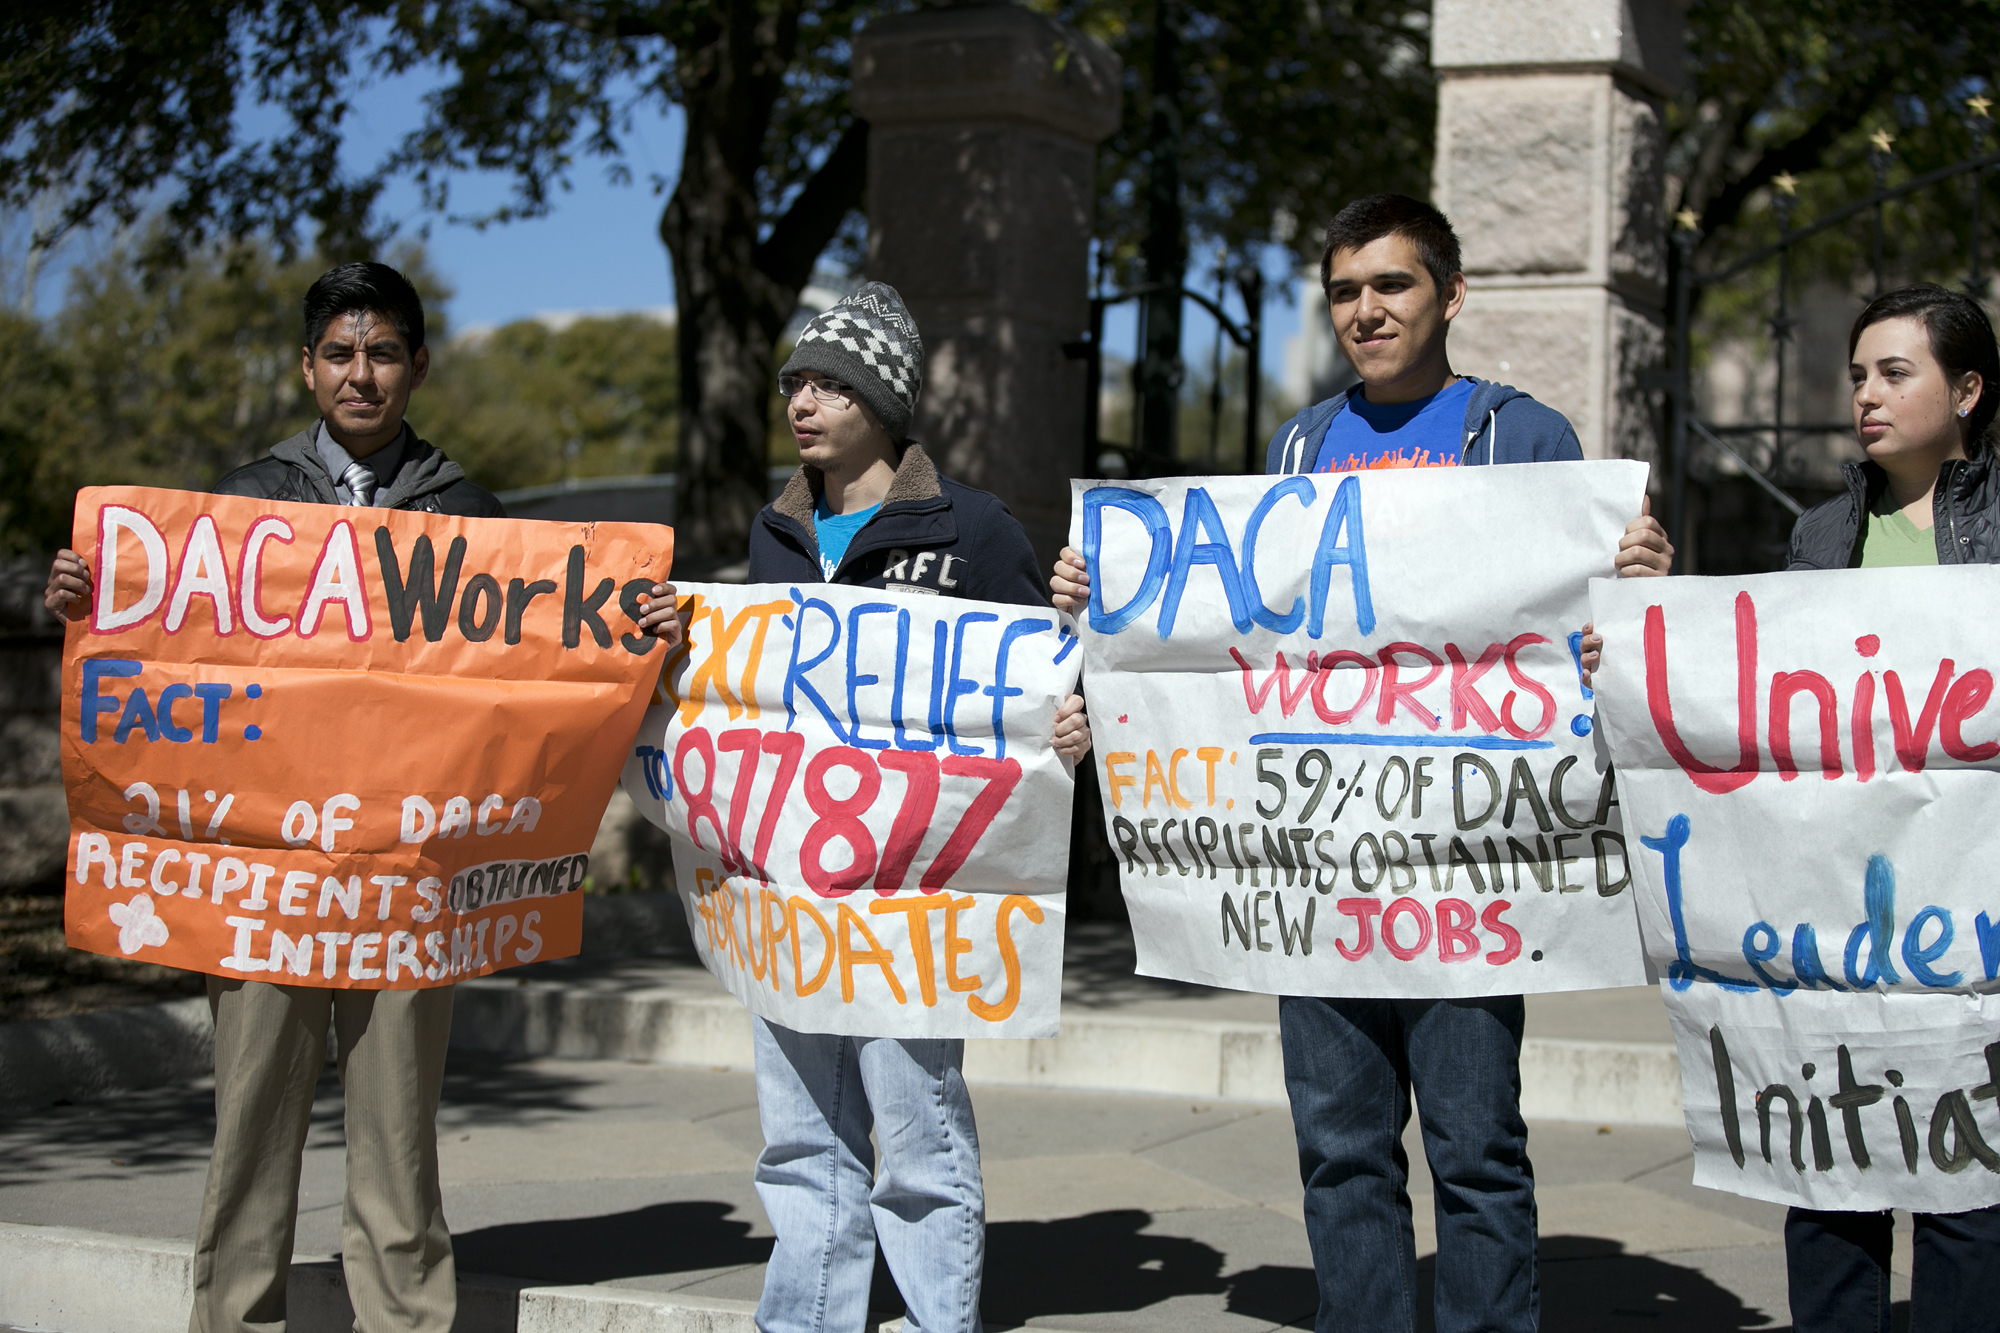 Young Immigrants Use #WithDACA to Reveal How Obama's Executive Order Transformed Their Lives